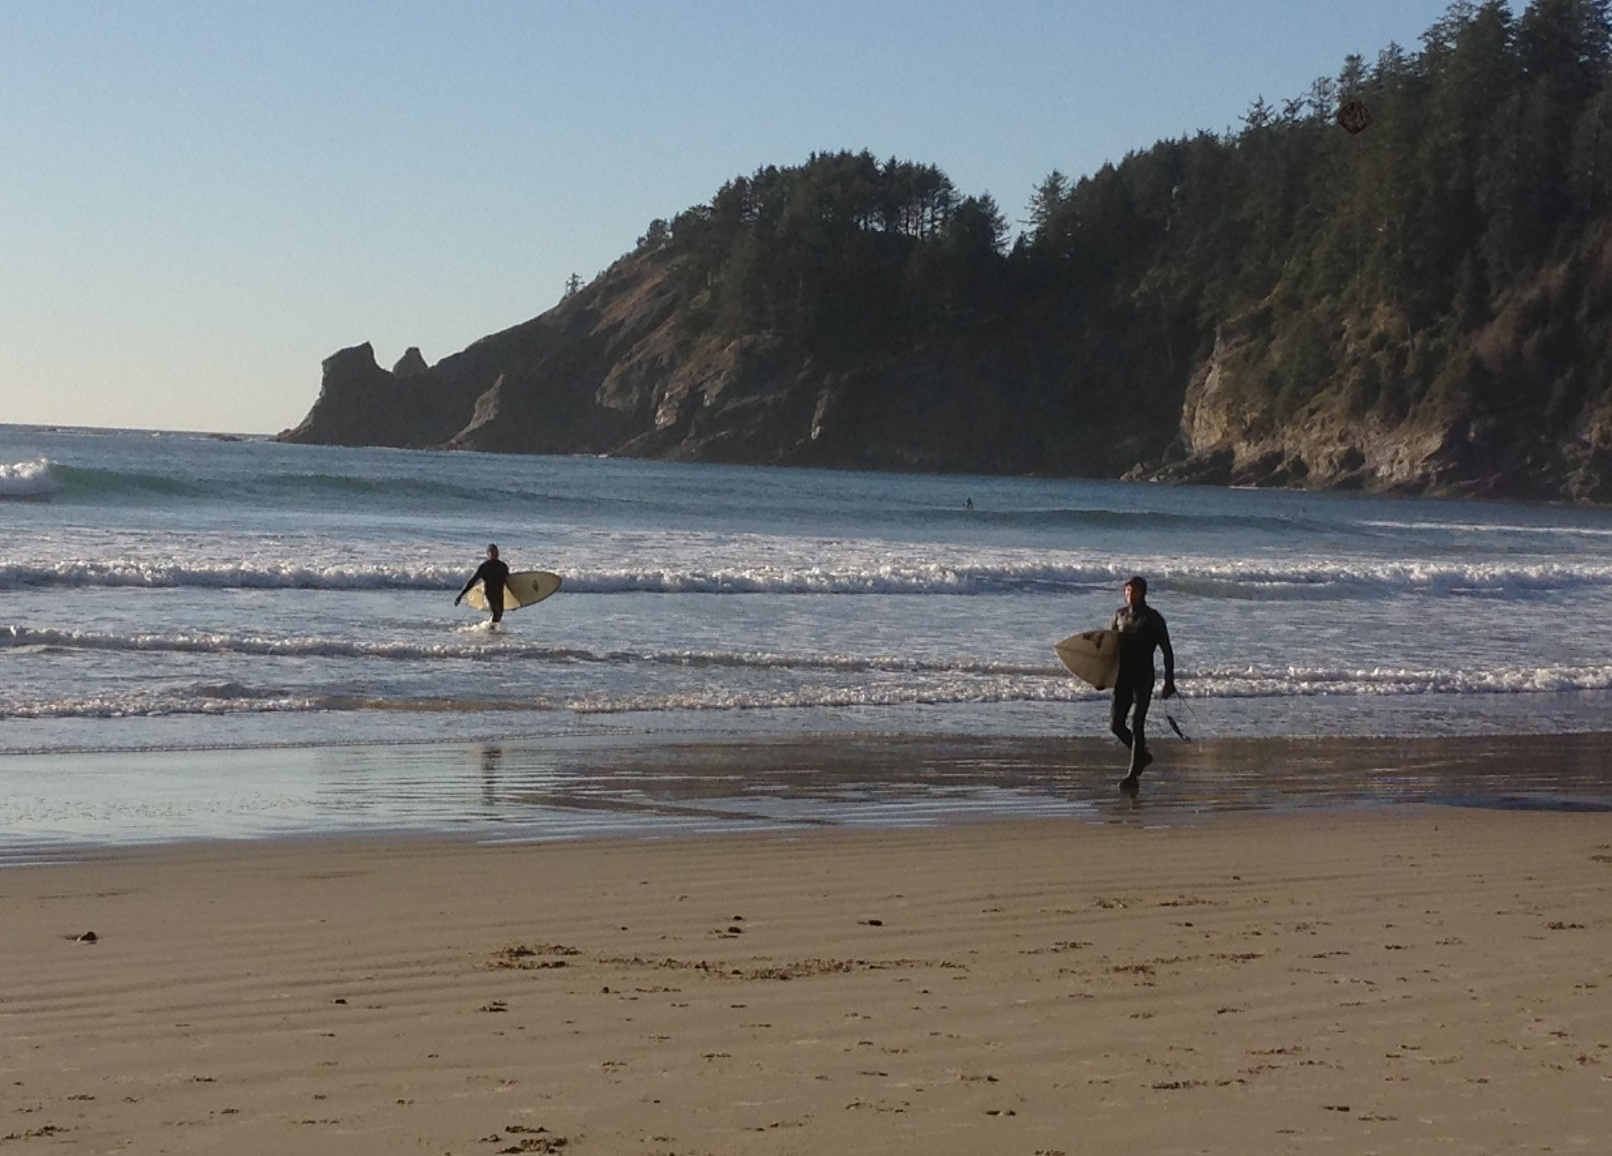 Surfers exit the water at Cape Falcon Marine Reserve, Oregon. Photo credit: Pete Stauffer